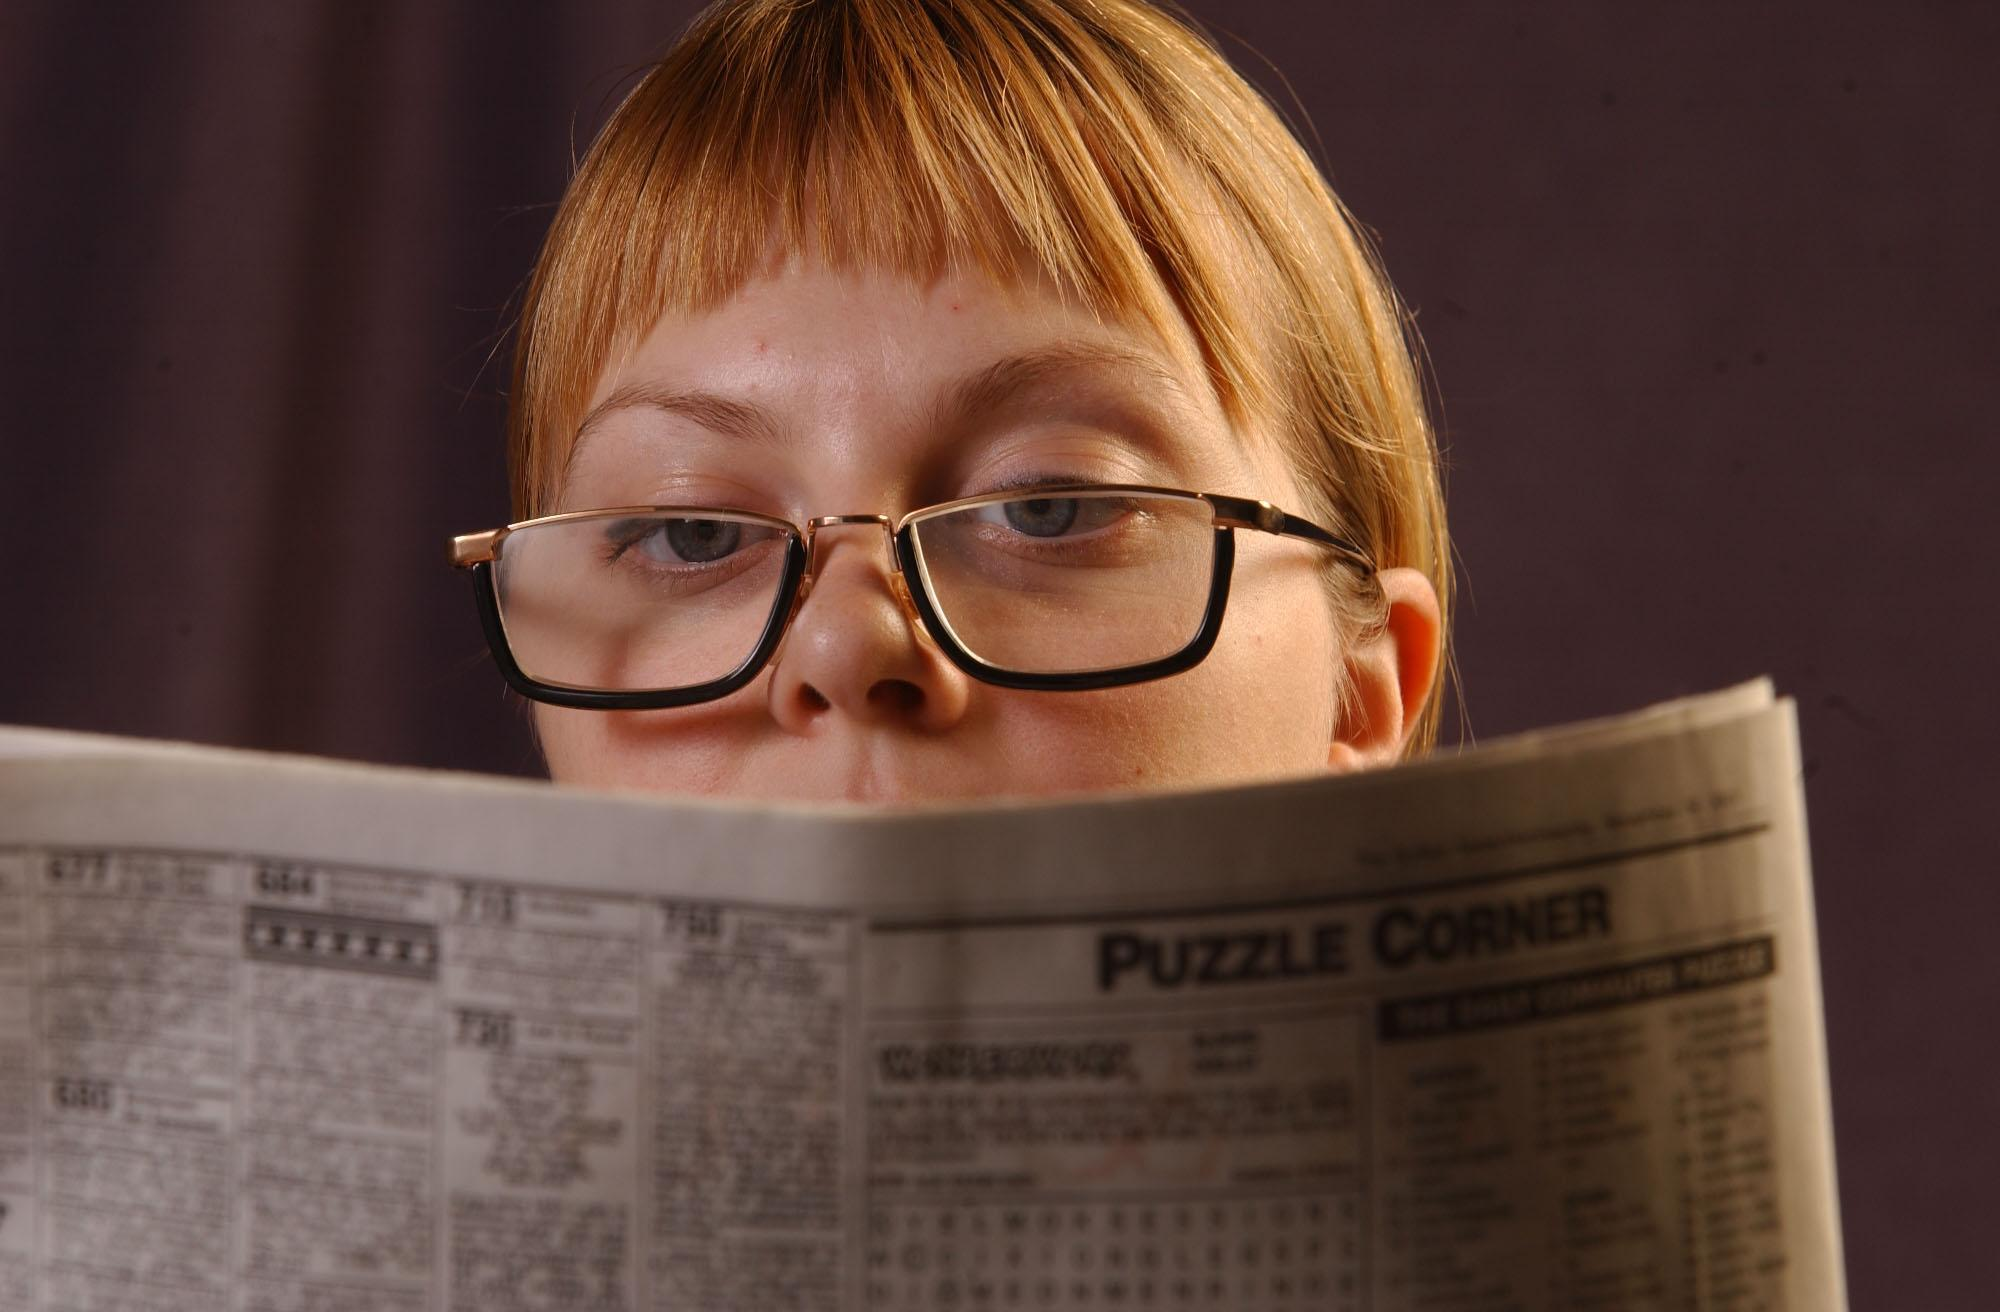 There are options to improve eyesight as we age. (Sharon Cantillon/Buffalo News file photo)